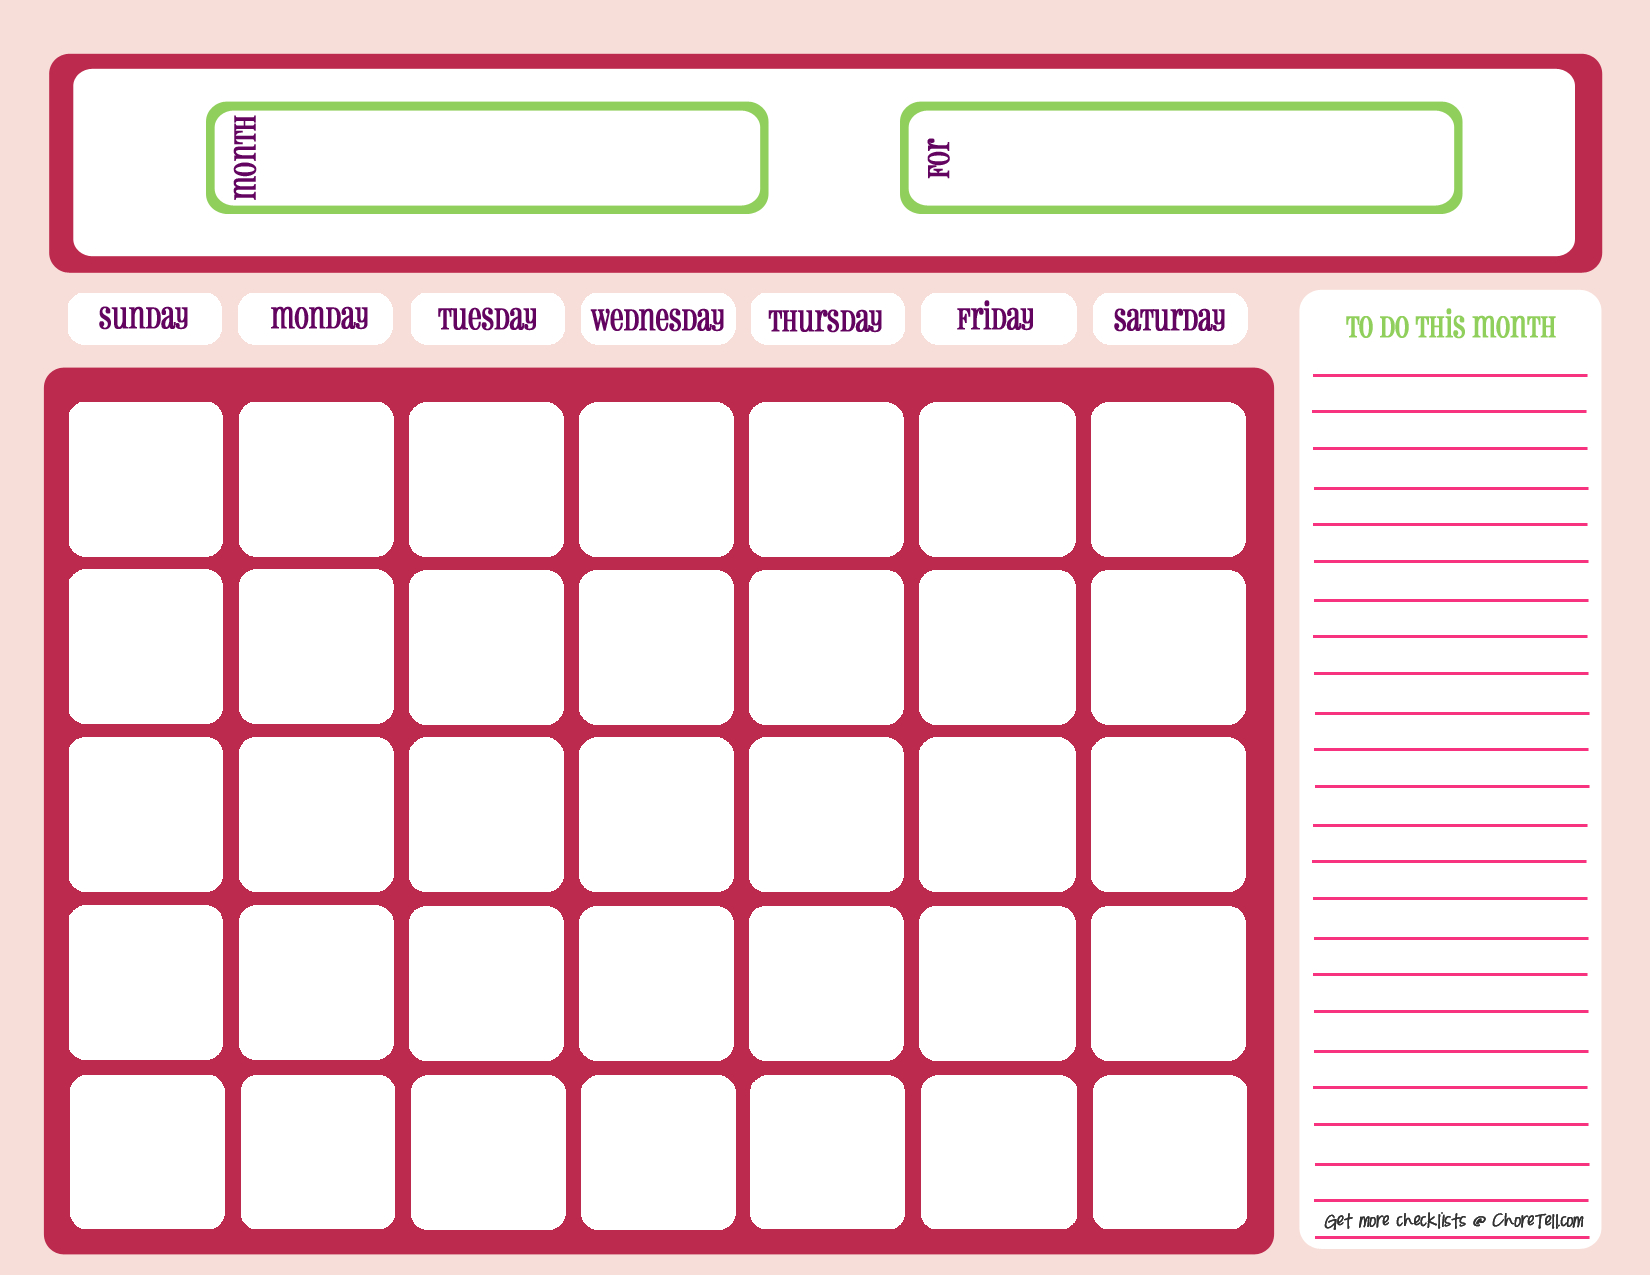 Blank Month Calendar - Pinks - Free Printable Downloads From Choretell for Blank Monthly Calendars To Print